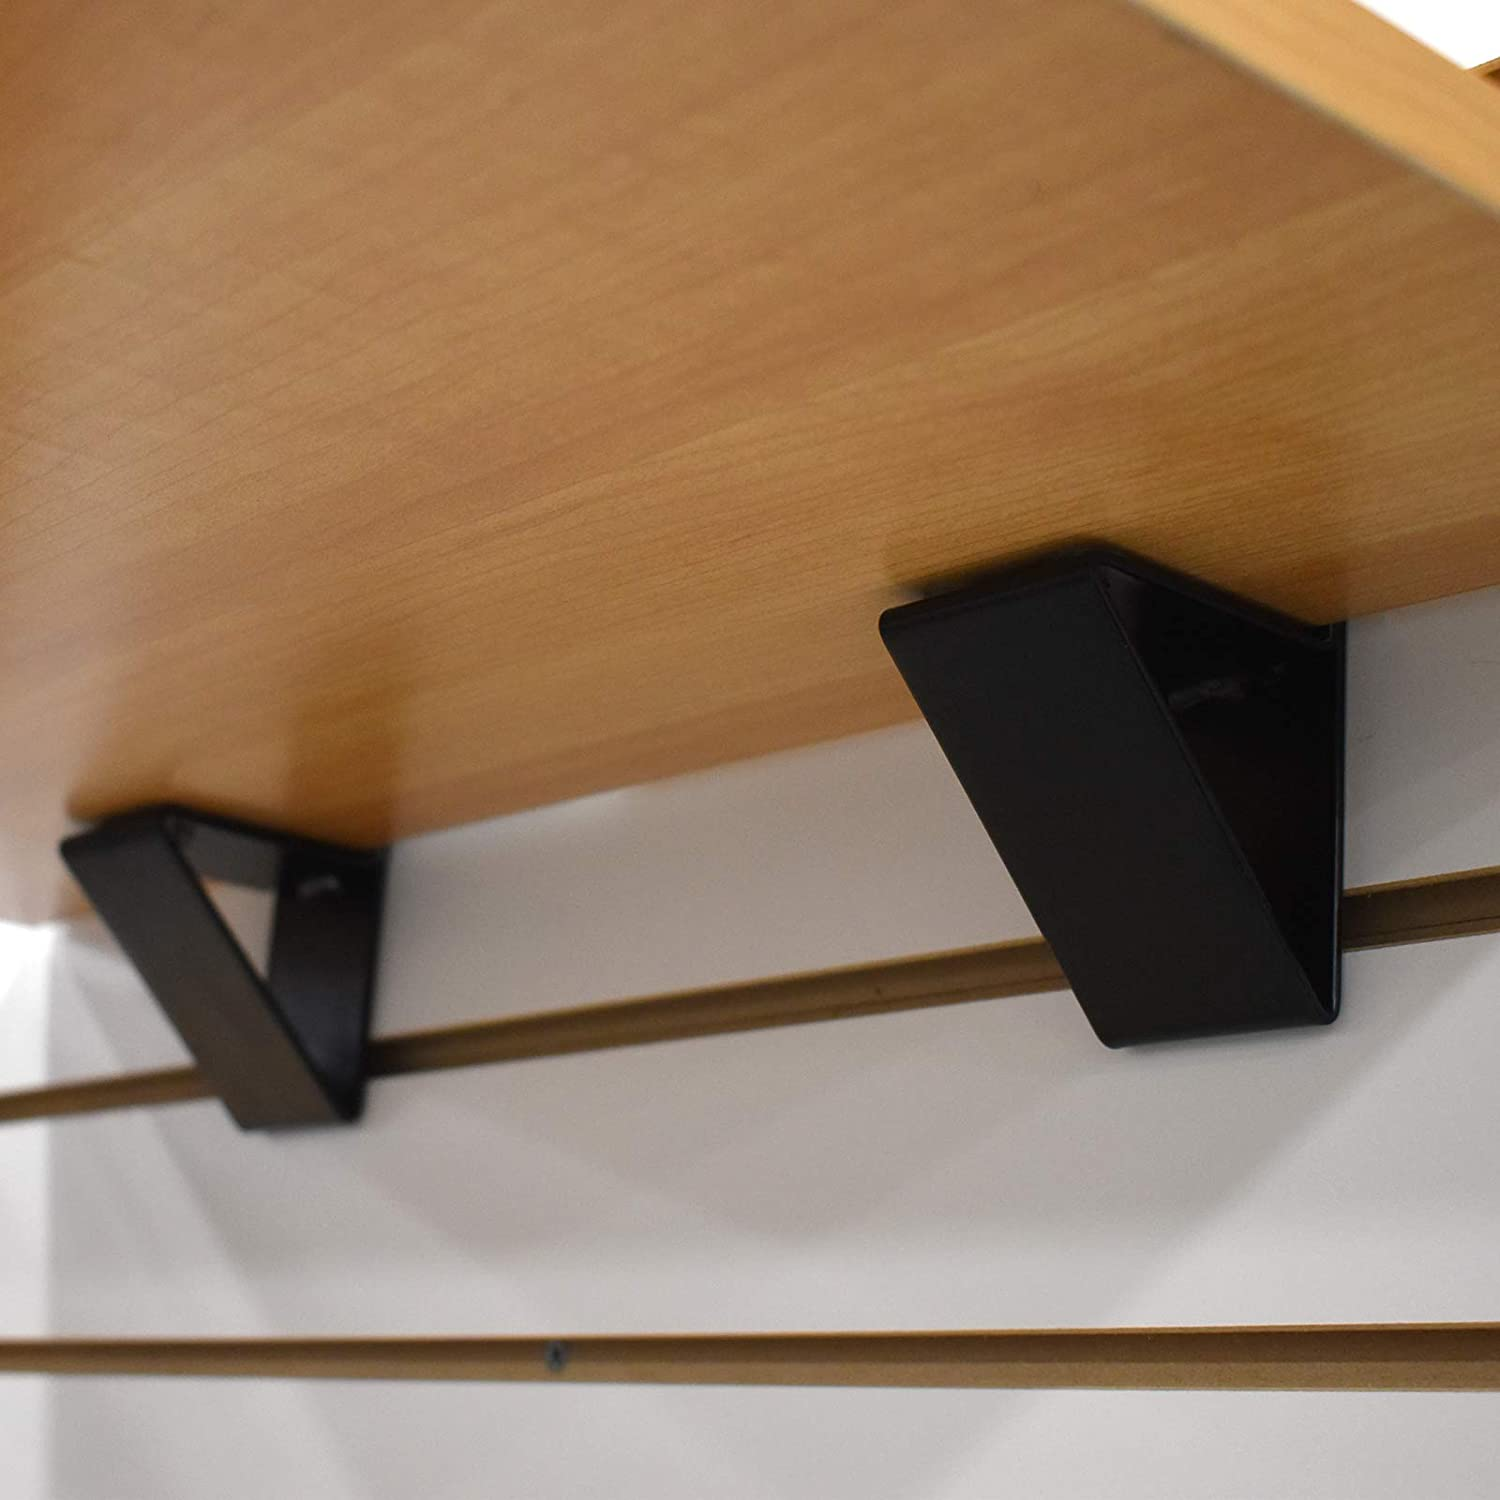 2 Pack Black Slatwall Wood Shelf Bracket Low Profile Support for 3//4 Thick Wooden Shelves up to 14 D